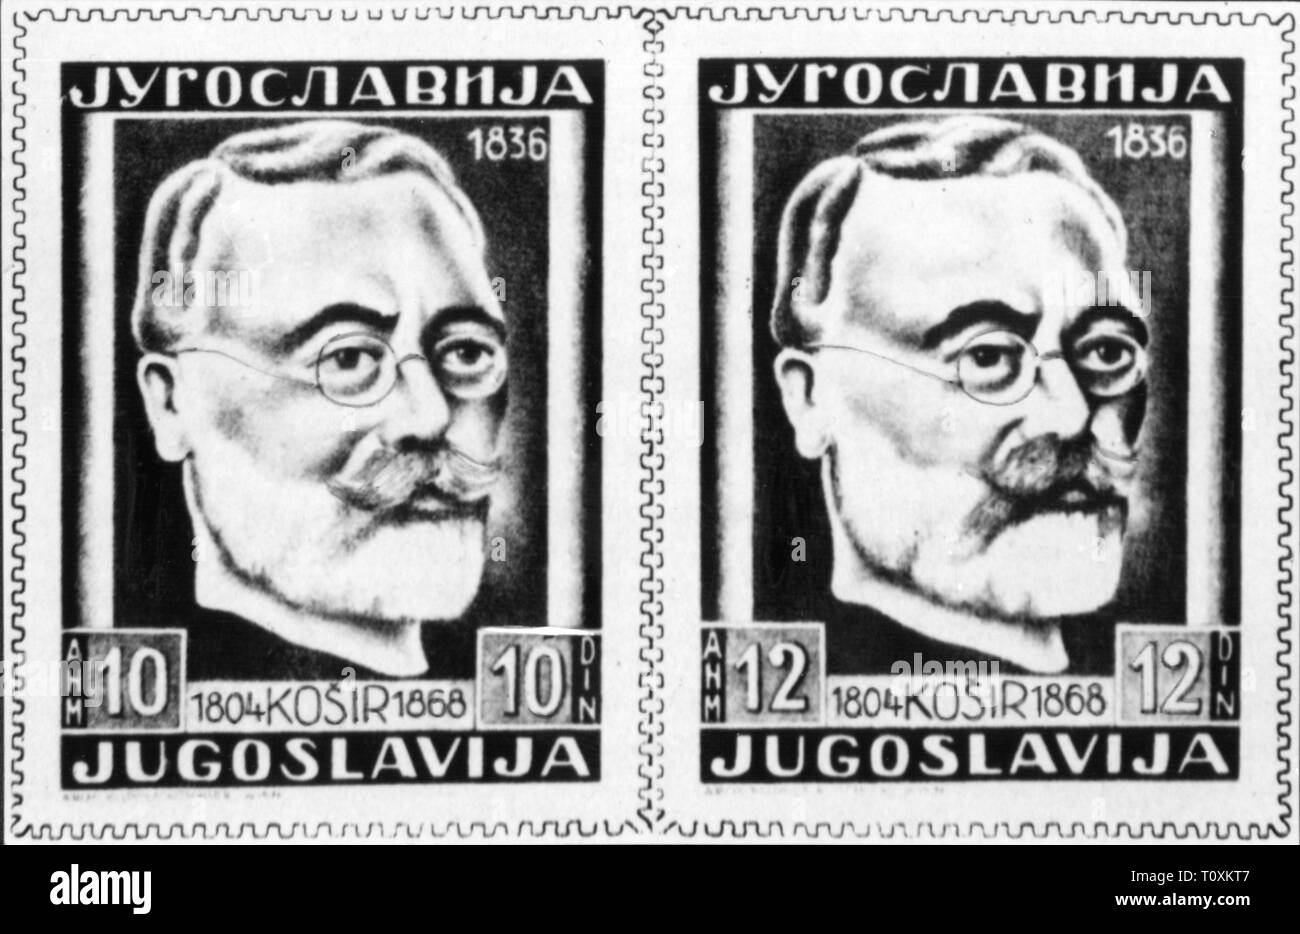 mail, postage stamps, Yugoslavia, 12 dinar special issues, commemorating Lovrenc Kosir, date of issue: 1948, Additional-Rights-Clearance-Info-Not-Available - Stock Image